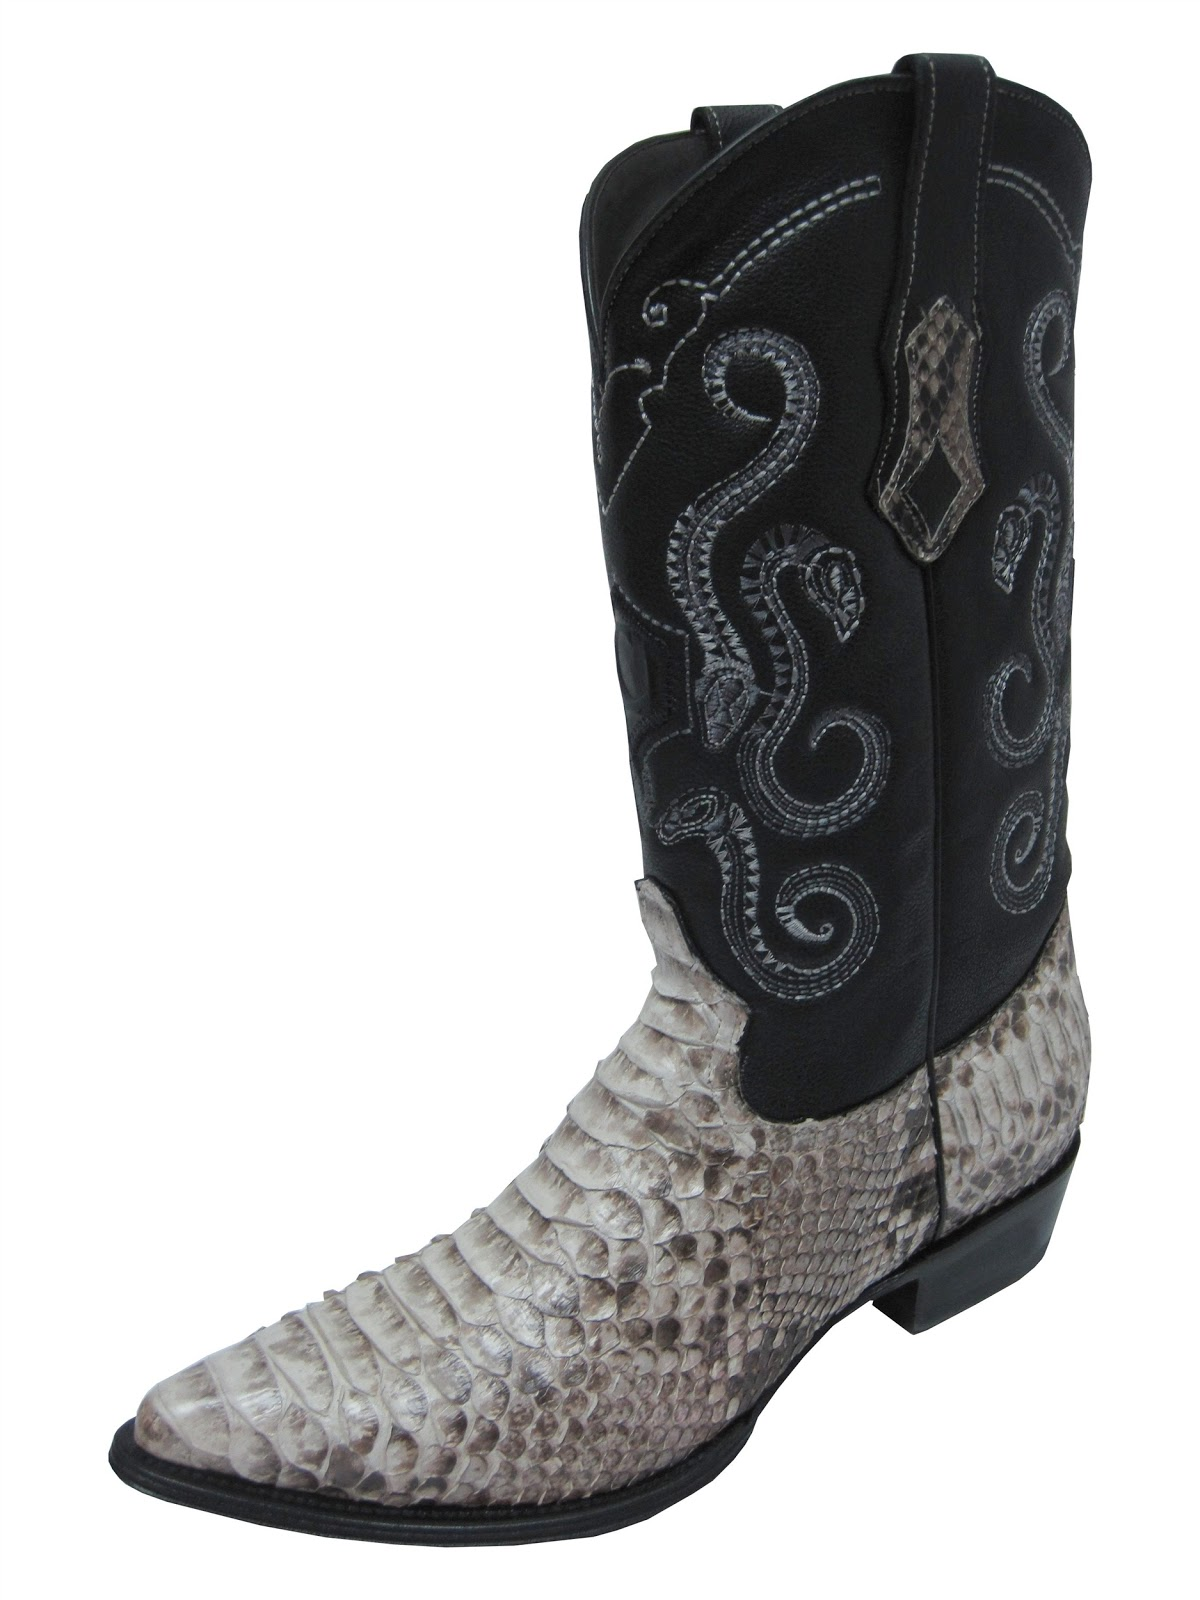 Boots Costume Pic Cuadra Boots Mexico